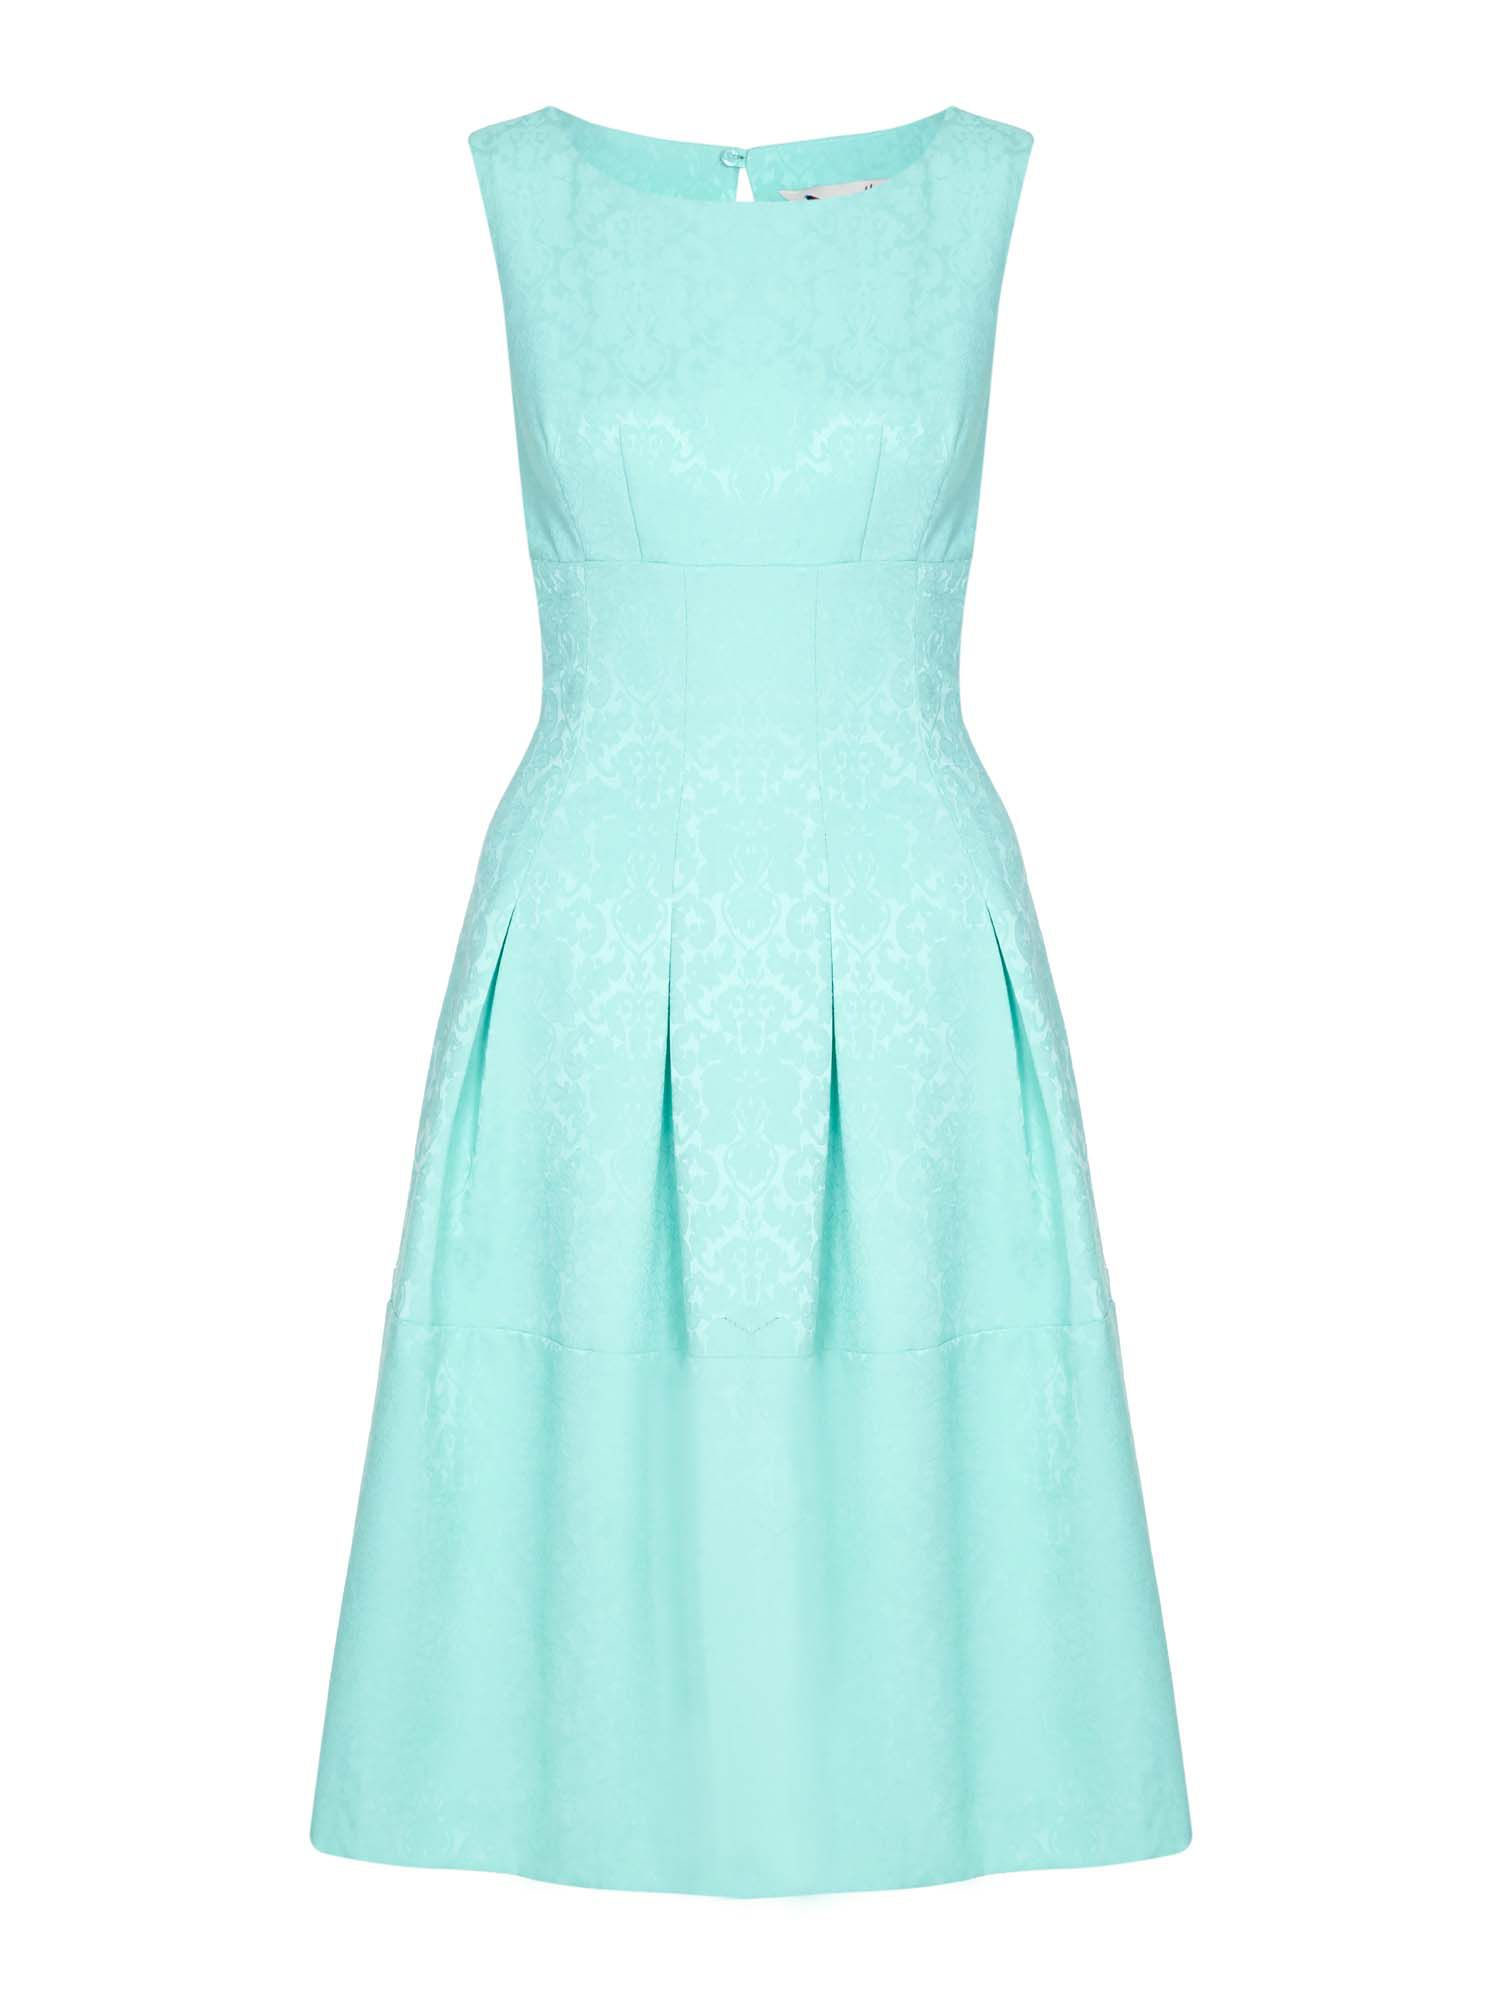 Yumi Floral Lace Panel Dress, Green